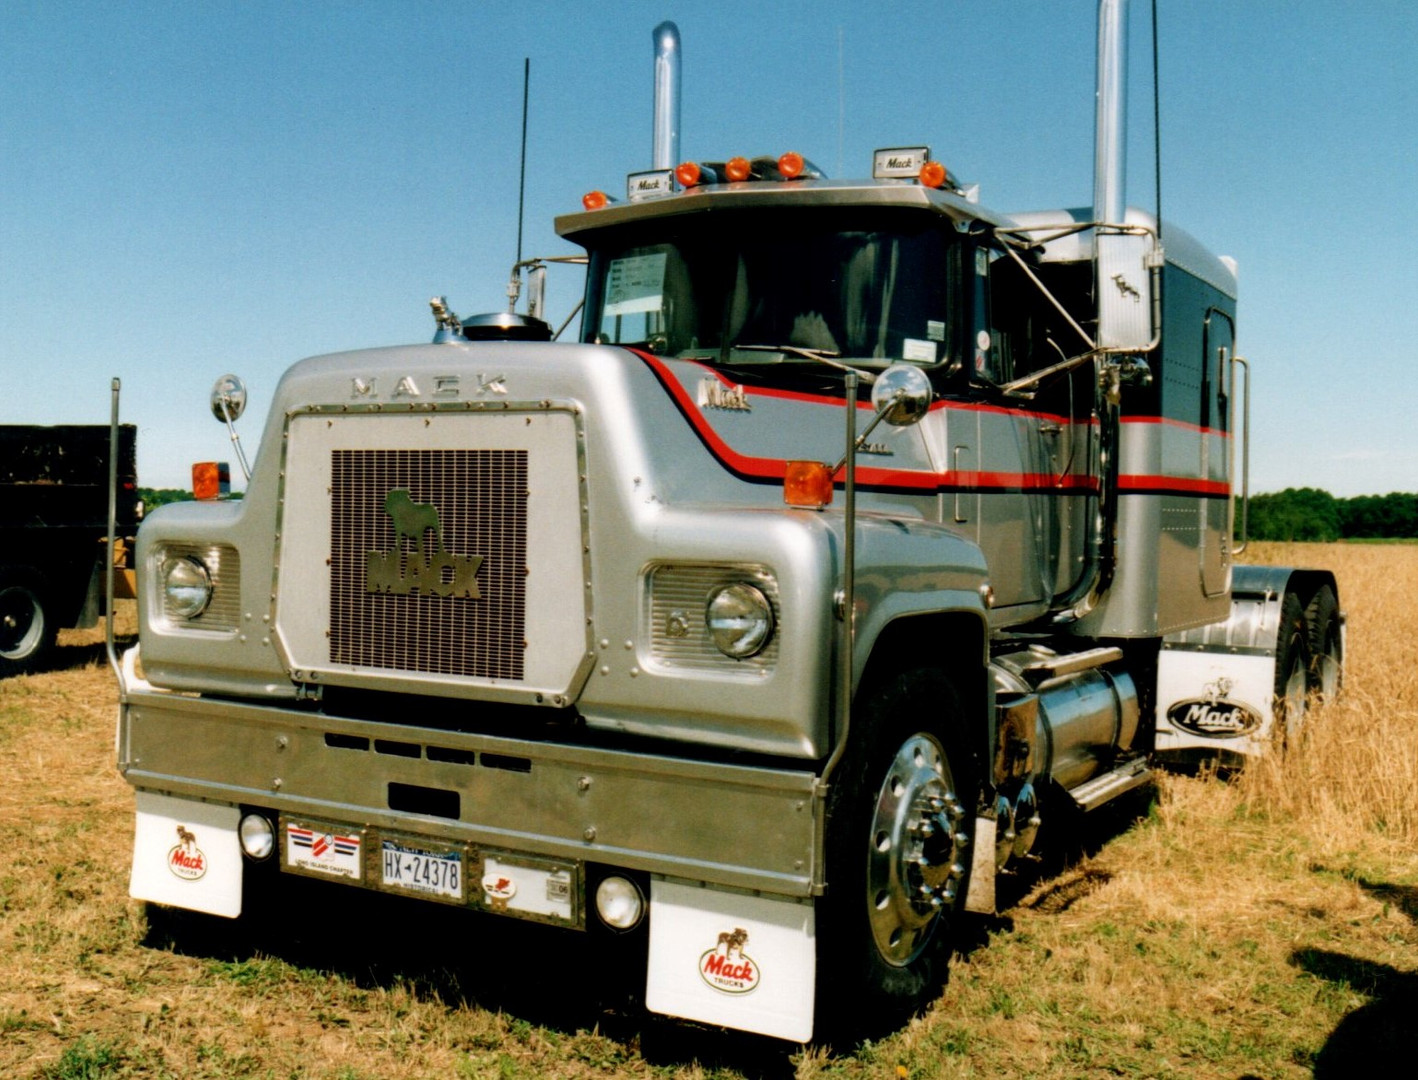 1976 Mack RS-700L tractor - Howard Pratt Jr.